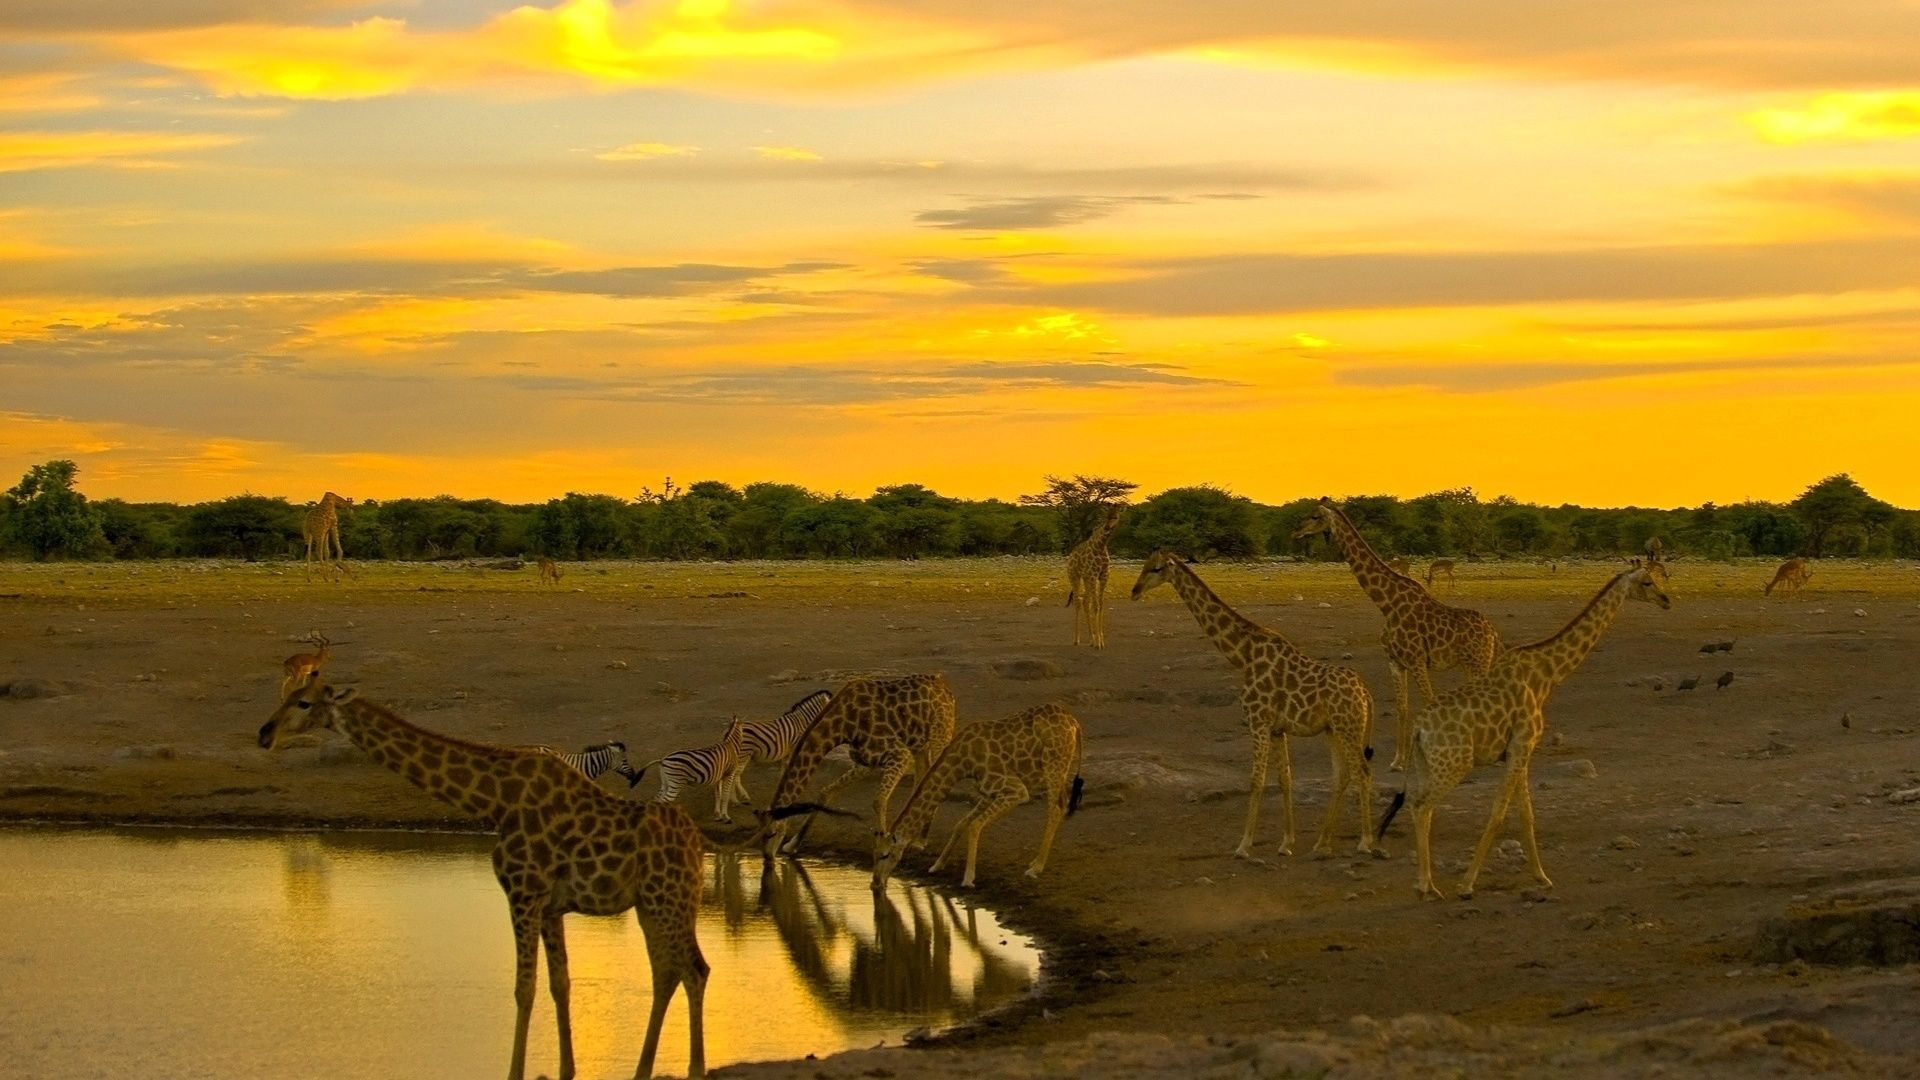 The Watering Hole In The Savannah